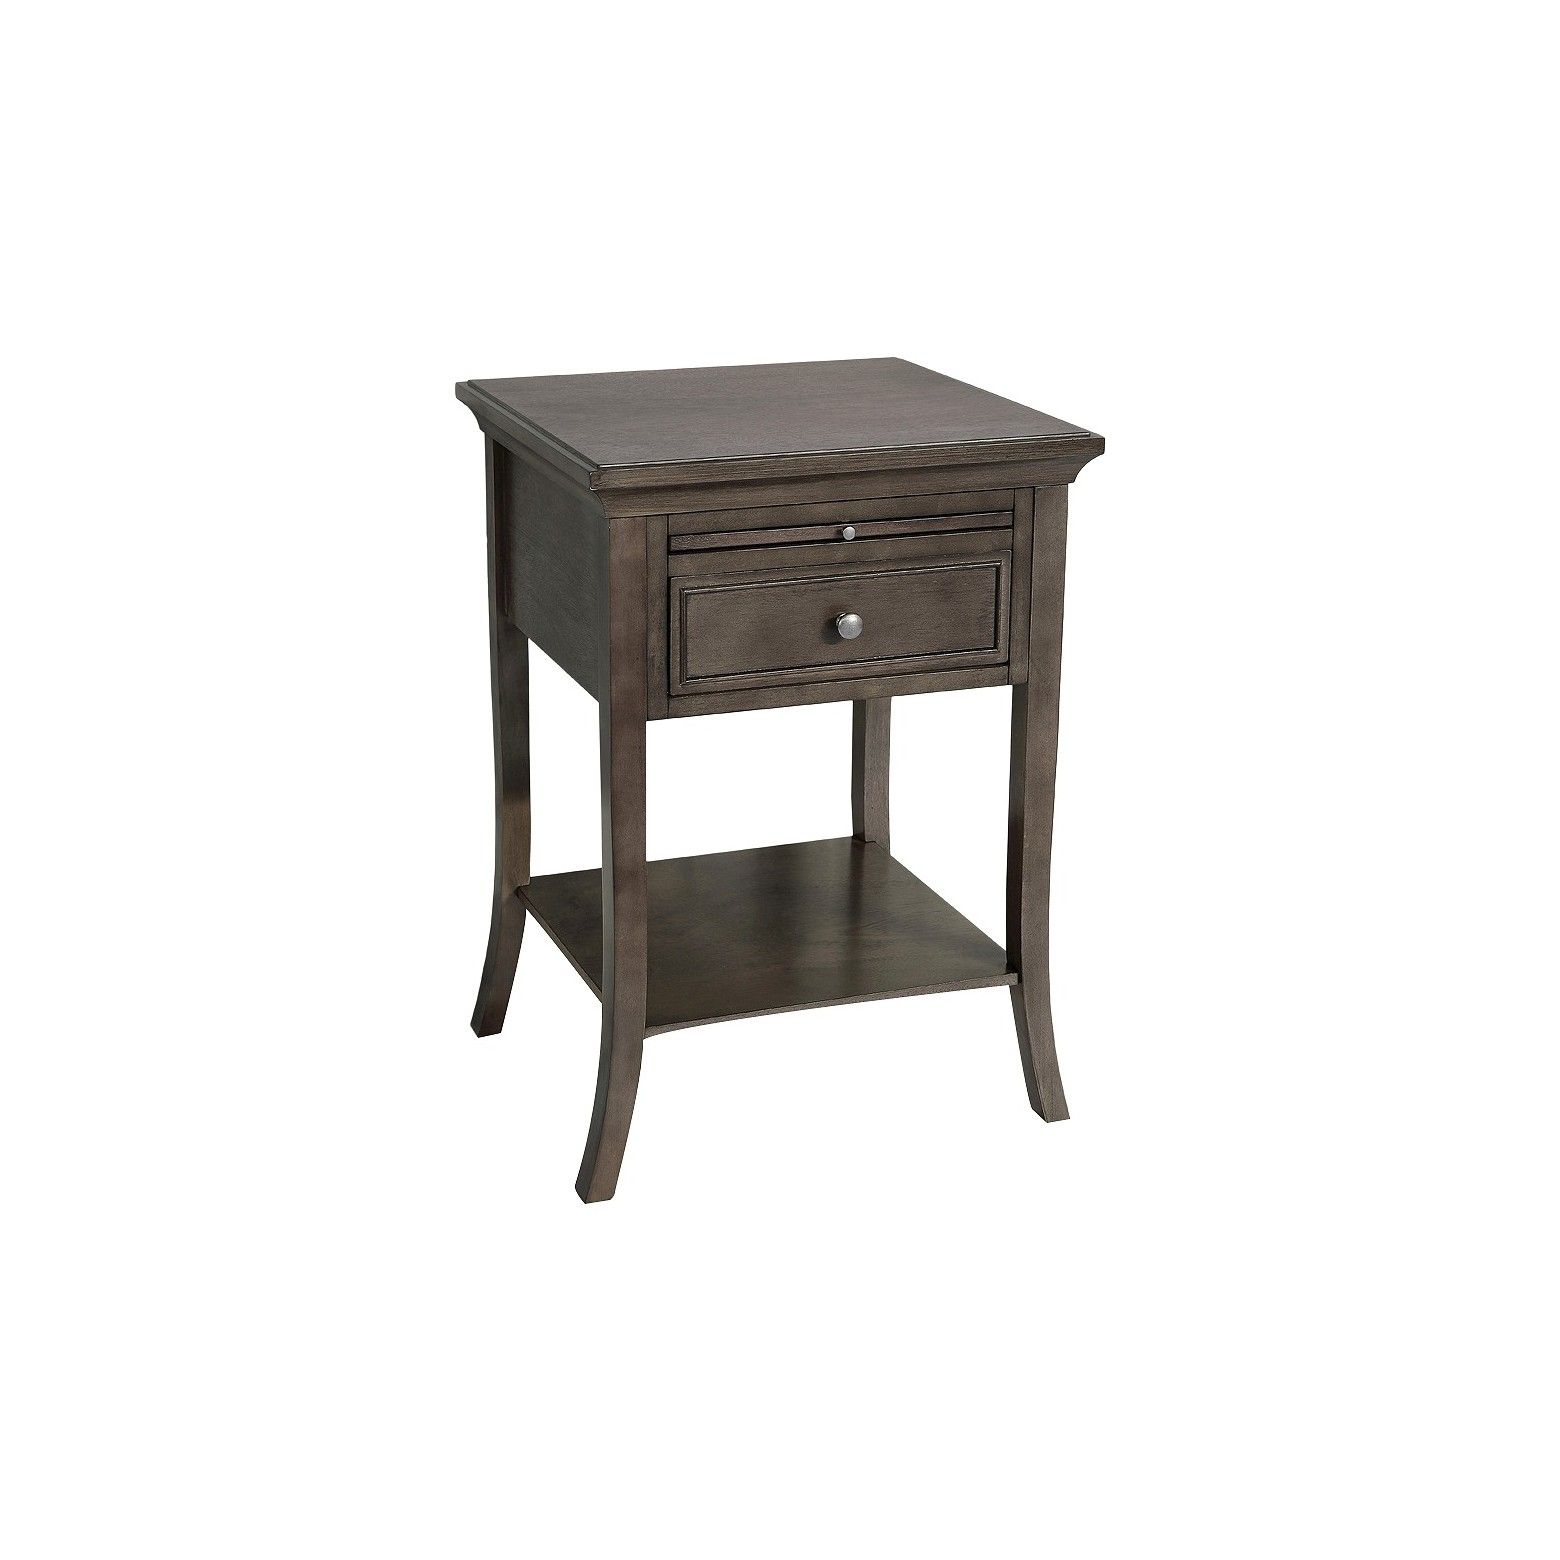 Side table with drawer  Simply Extraordinary Side Table  Threshold  Large drawers